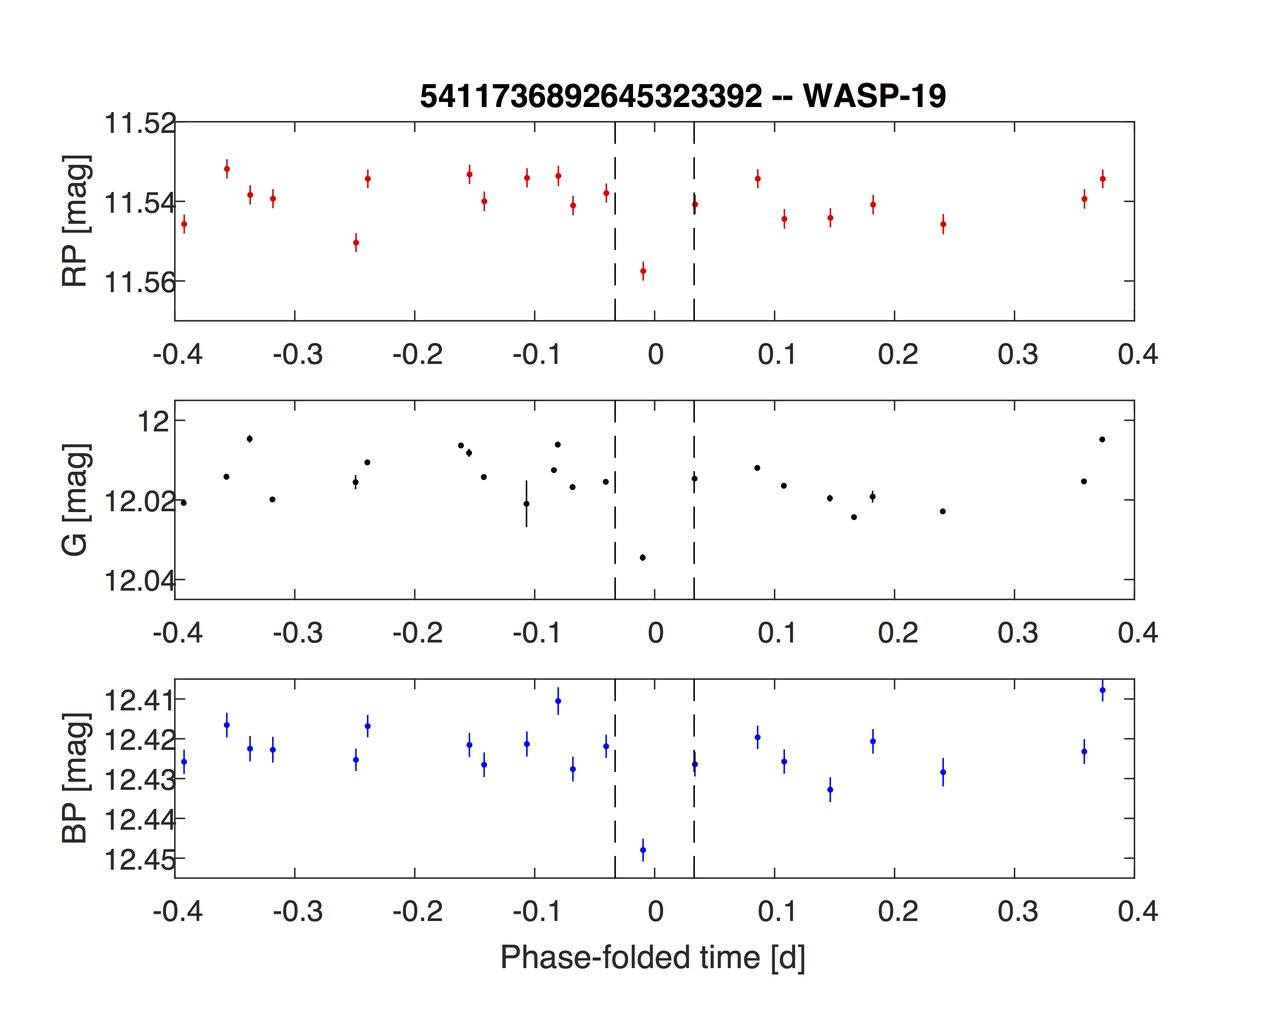 1567215191966-Gaia_WASP-19b_light_curve_1280.jpg